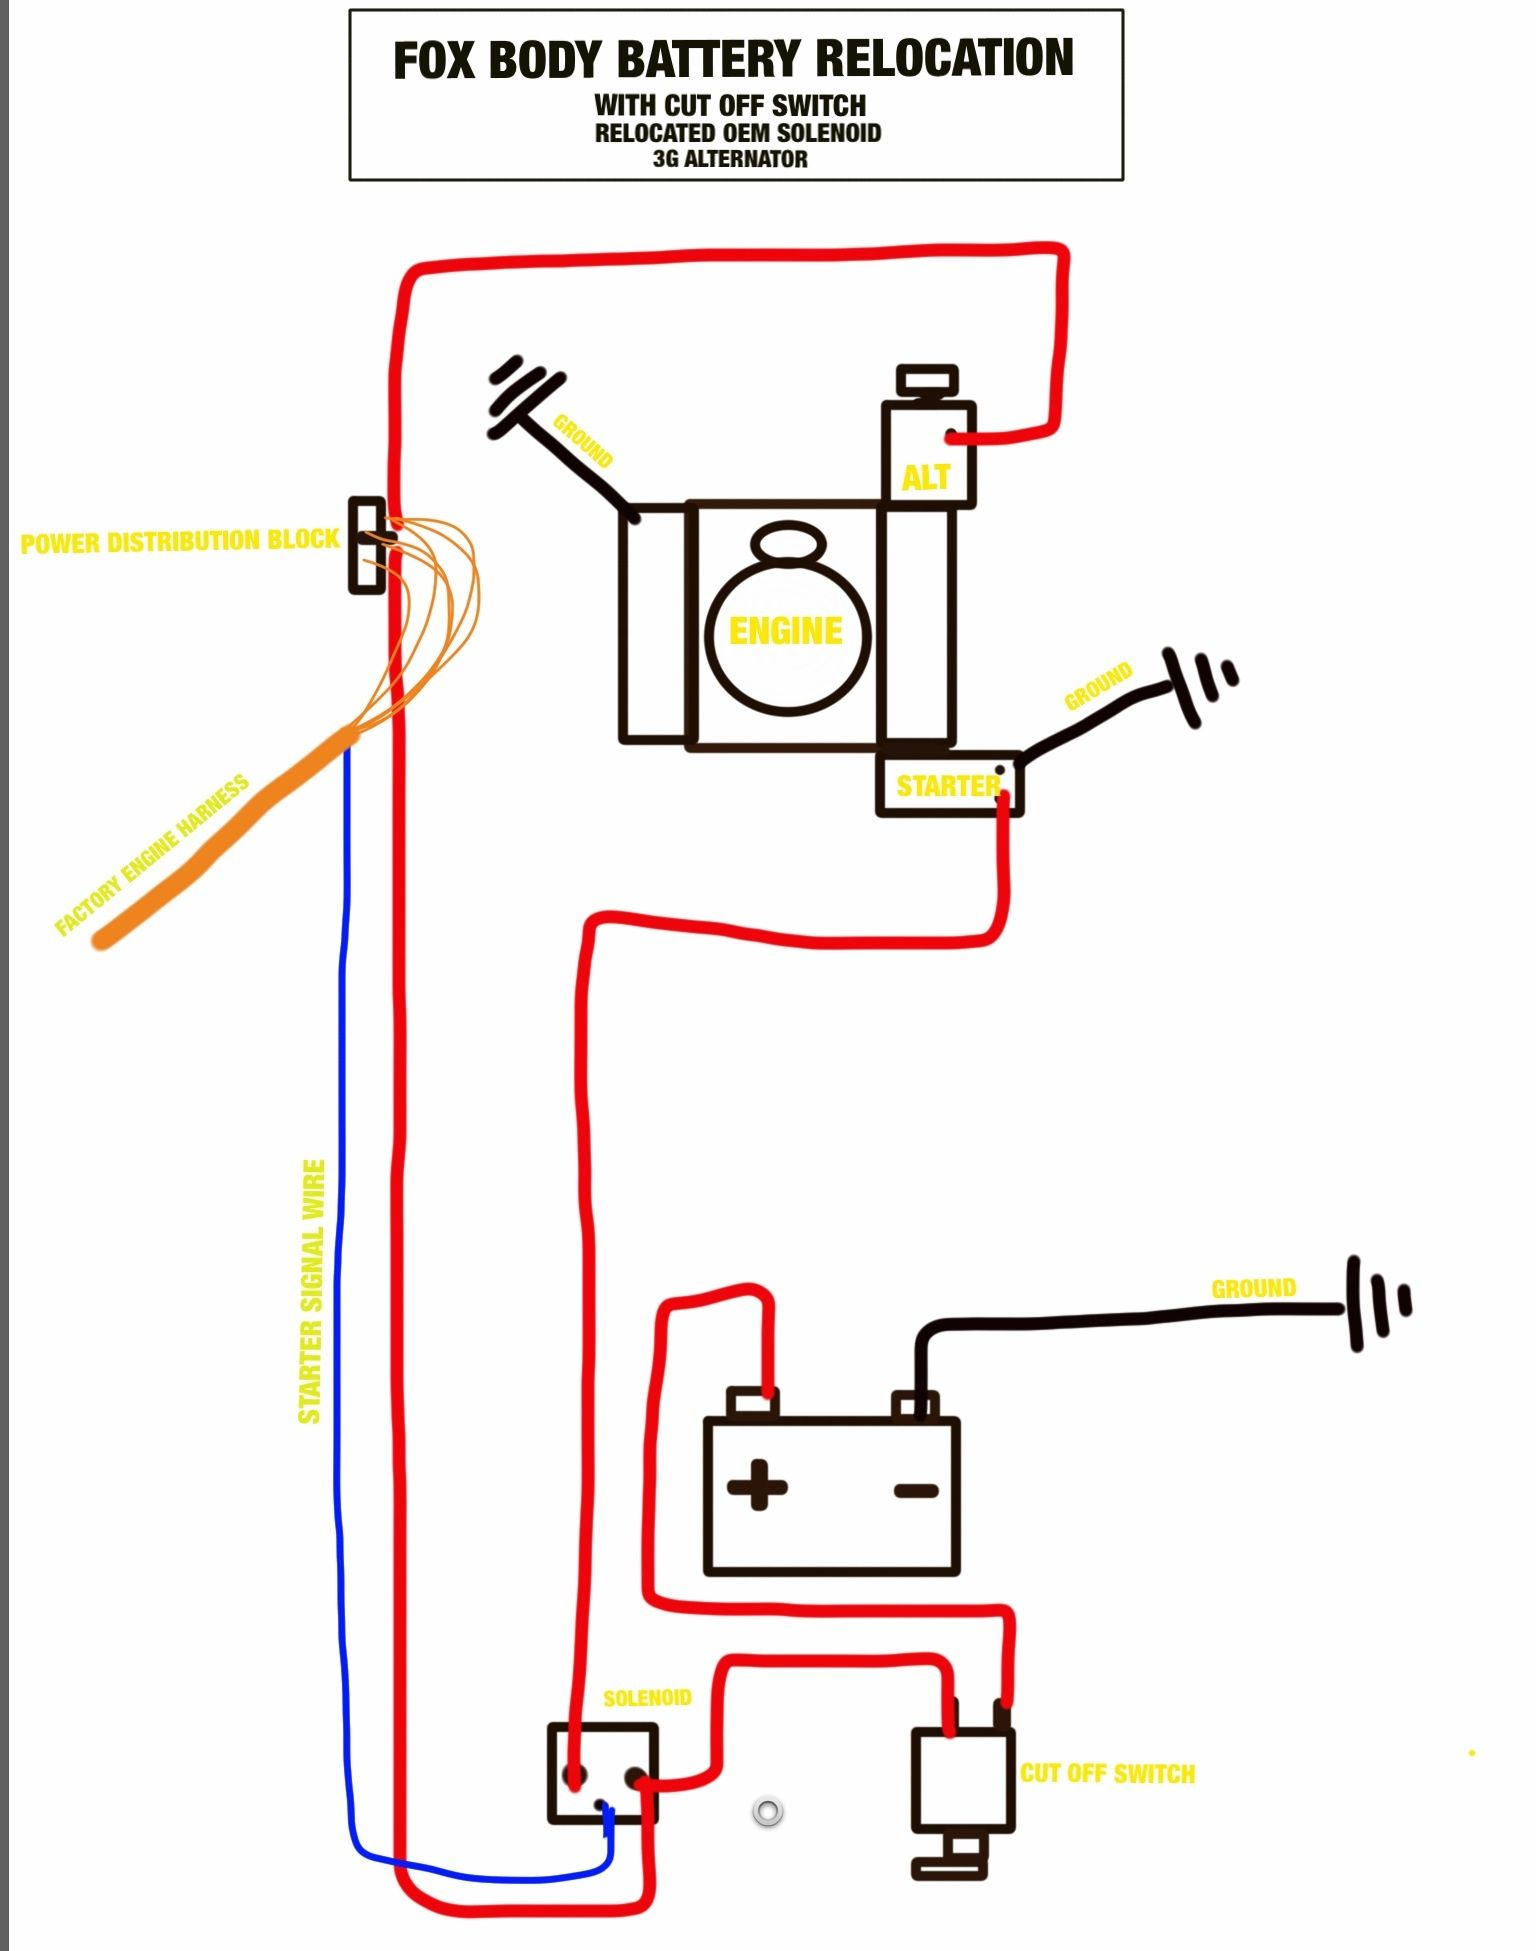 Fox Battery Relocation Mustang Forums At Stangnet Rh Stangnet Com 1988 Mustang Battery Wiring Diagram 2011 Mustang Wiring Diagr Body Battery Alternator Diy Car